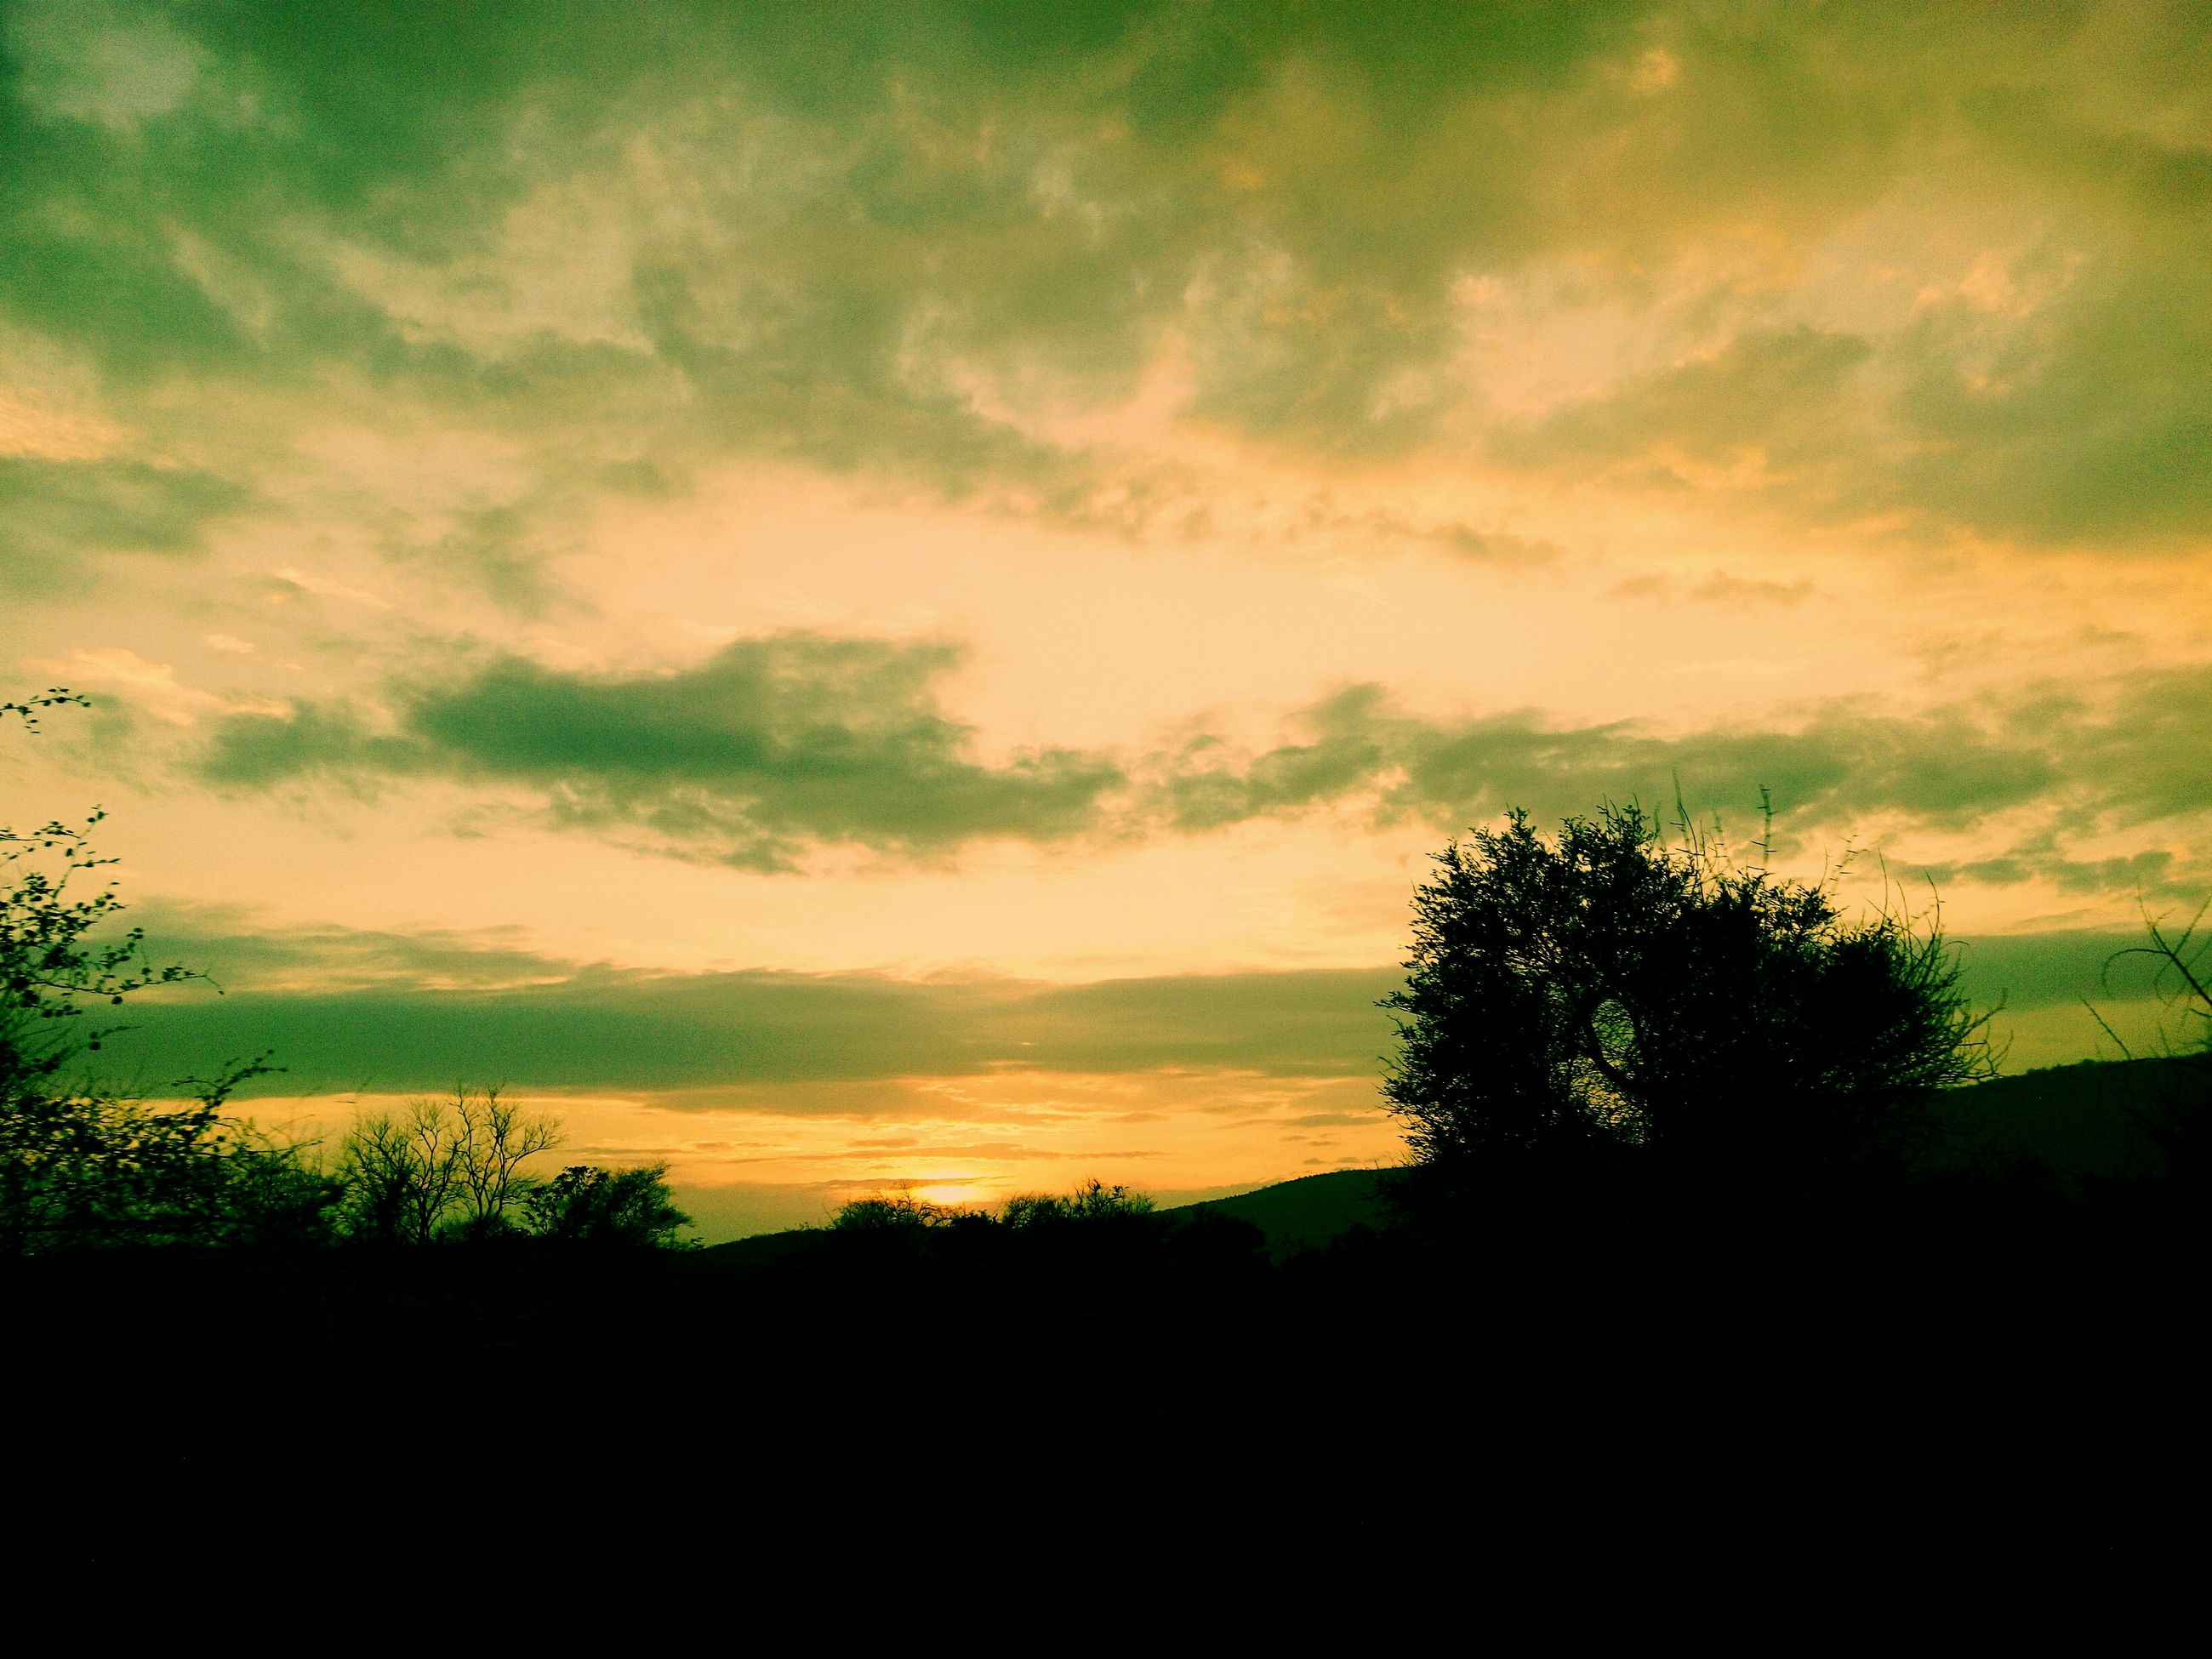 silhouette, sunset, tranquil scene, tranquility, sky, scenics, beauty in nature, tree, landscape, nature, cloud - sky, idyllic, cloud, growth, cloudy, field, dark, outdoors, dusk, non-urban scene